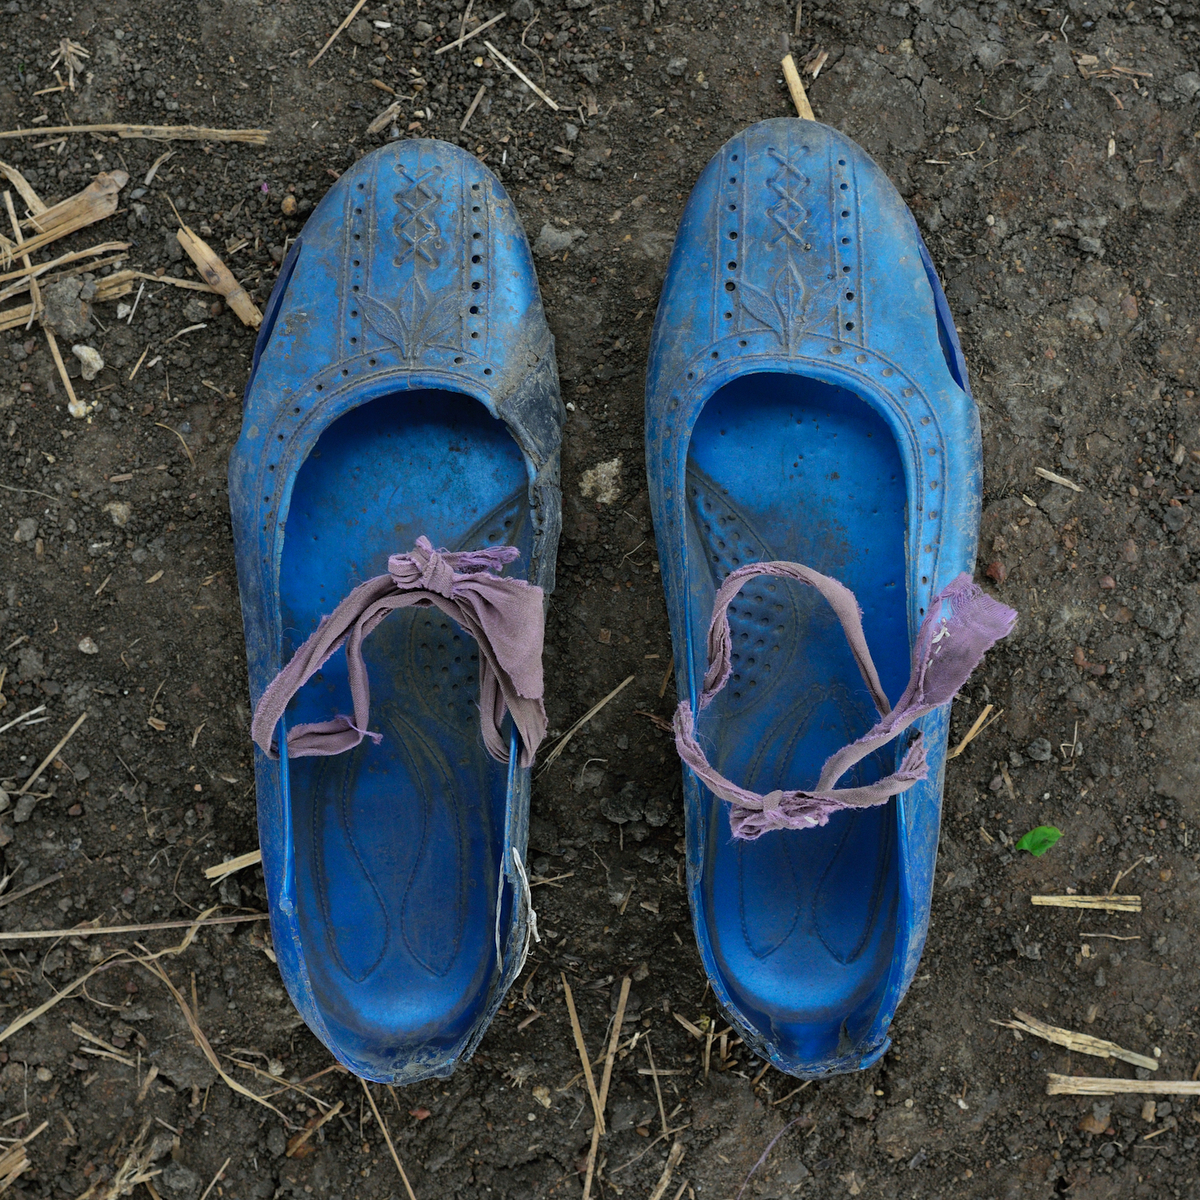 A Long Walk (Refugee Shoe Project) © Shannon Jensen, 2014